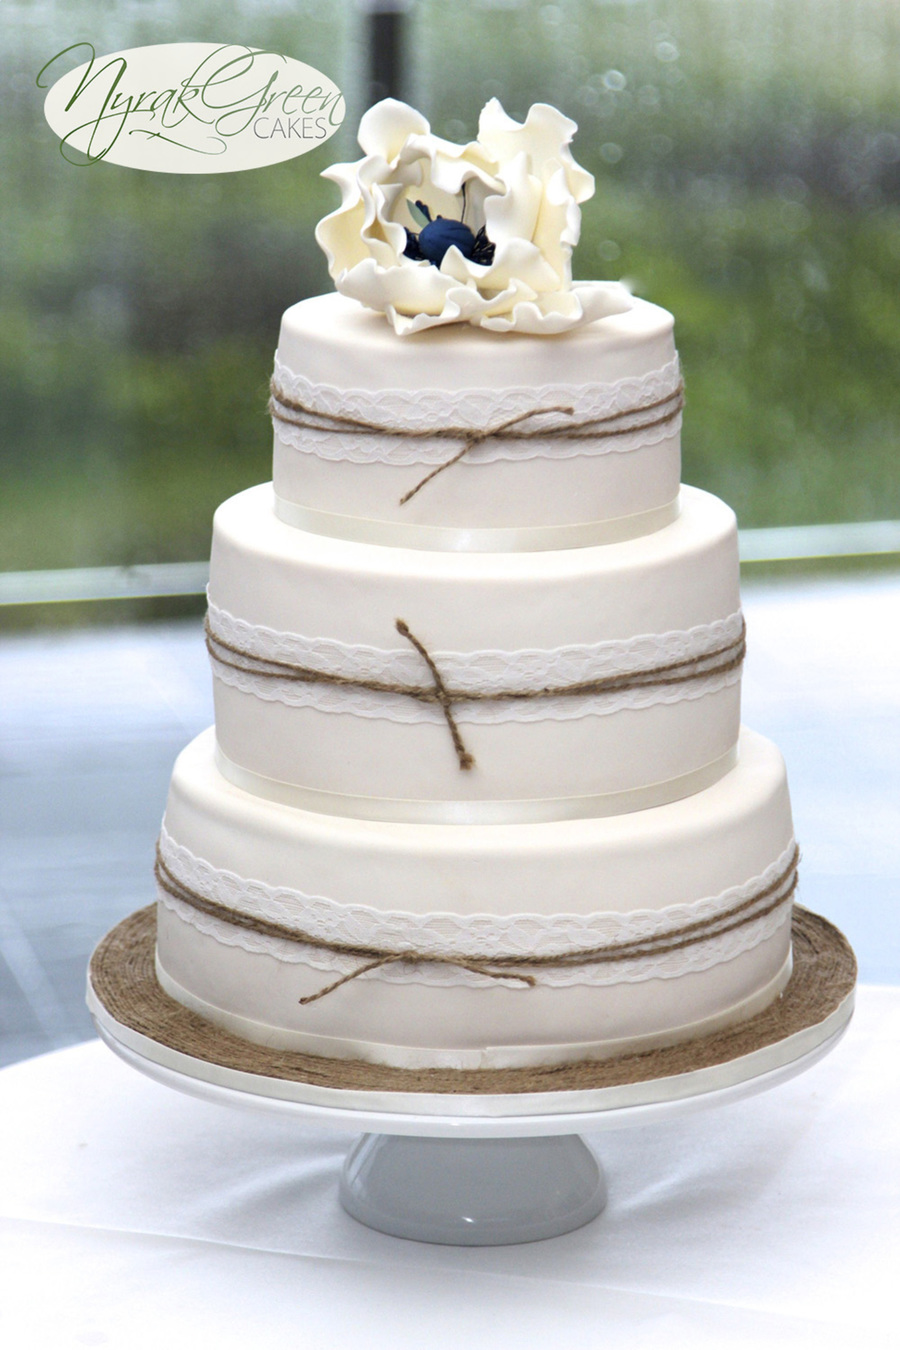 Chocolate Nautical Wedding Cake